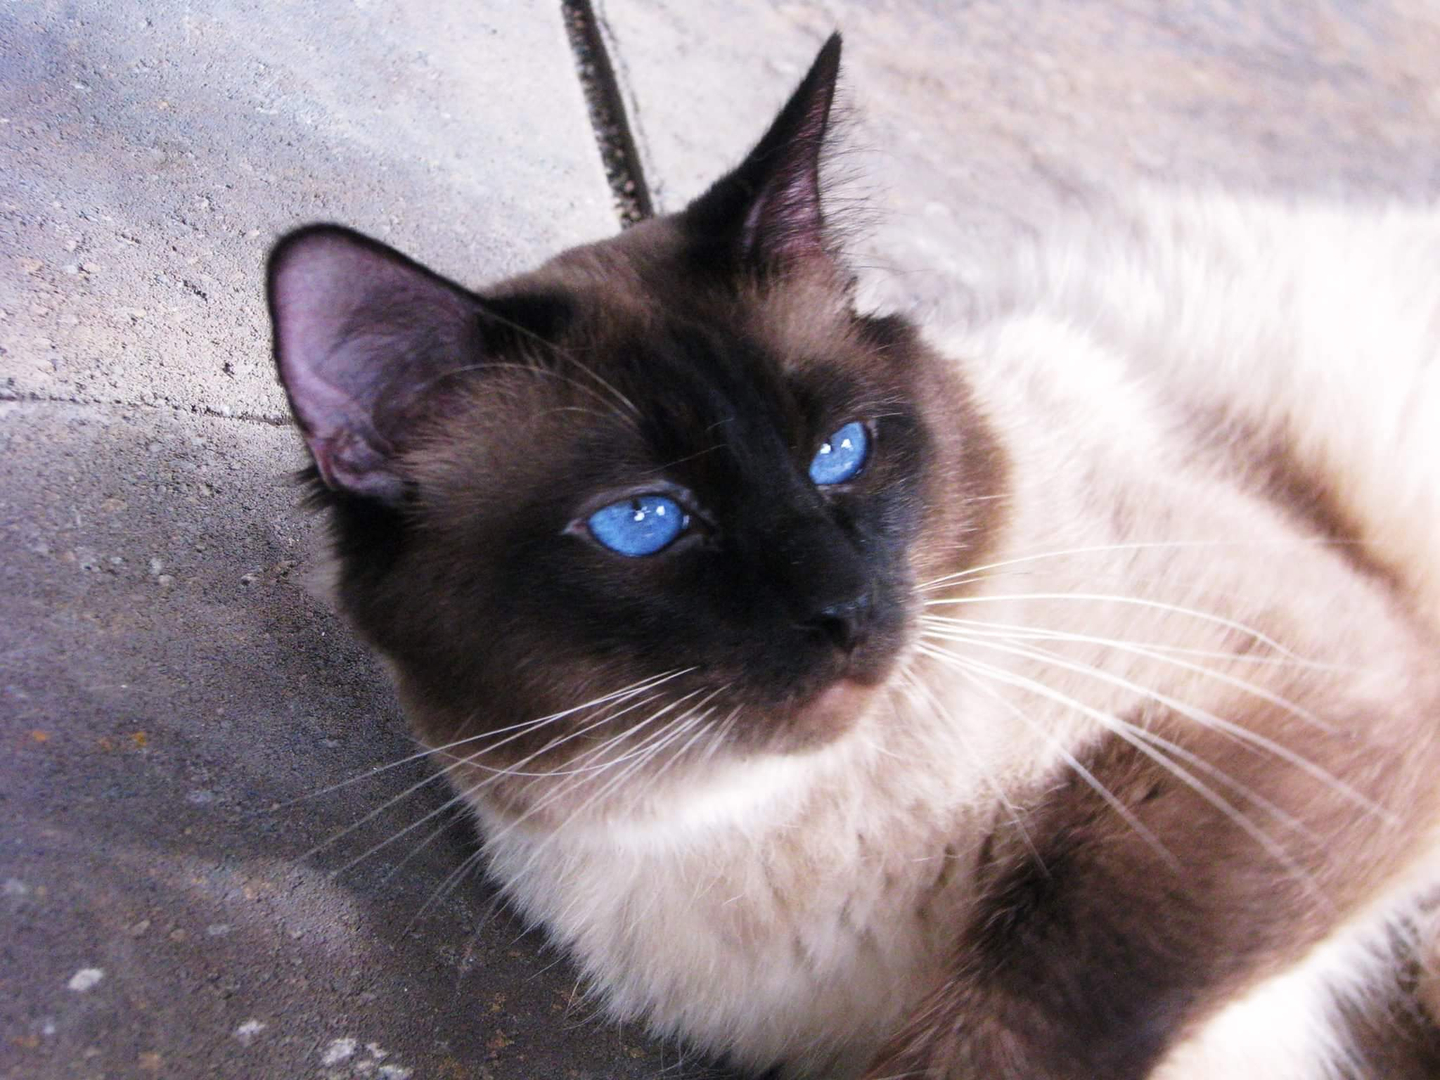 The Balinese Cat